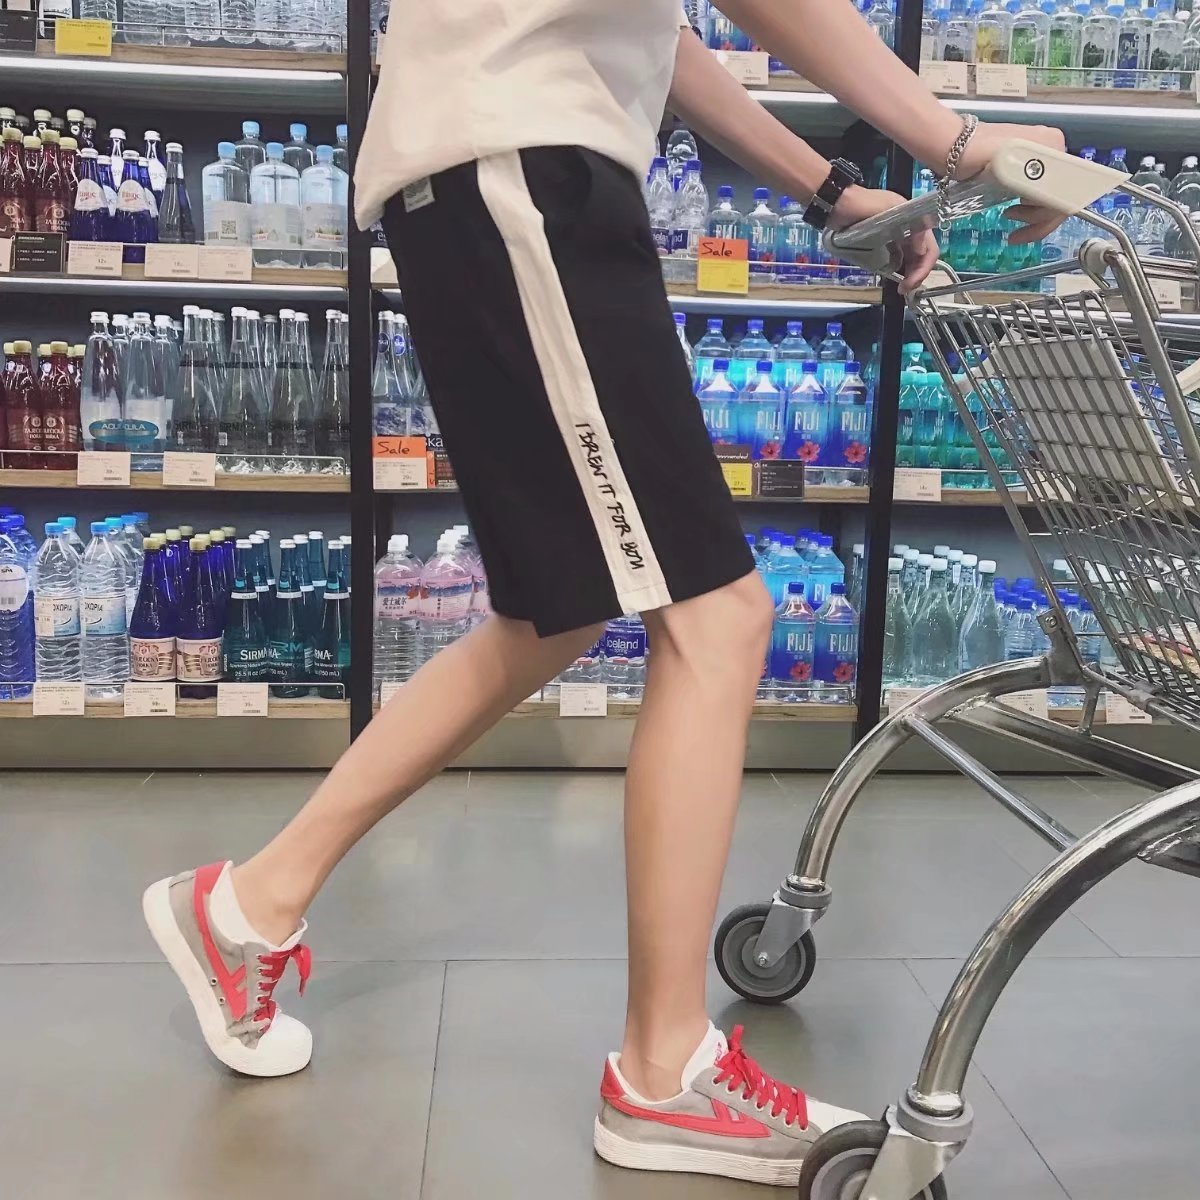 18 New Style Men's Casual Leisure Shorts BOY'S 5 Points Loose-Fit Large Trunks Zi Xia Ban Ku Leg Pajama Simple